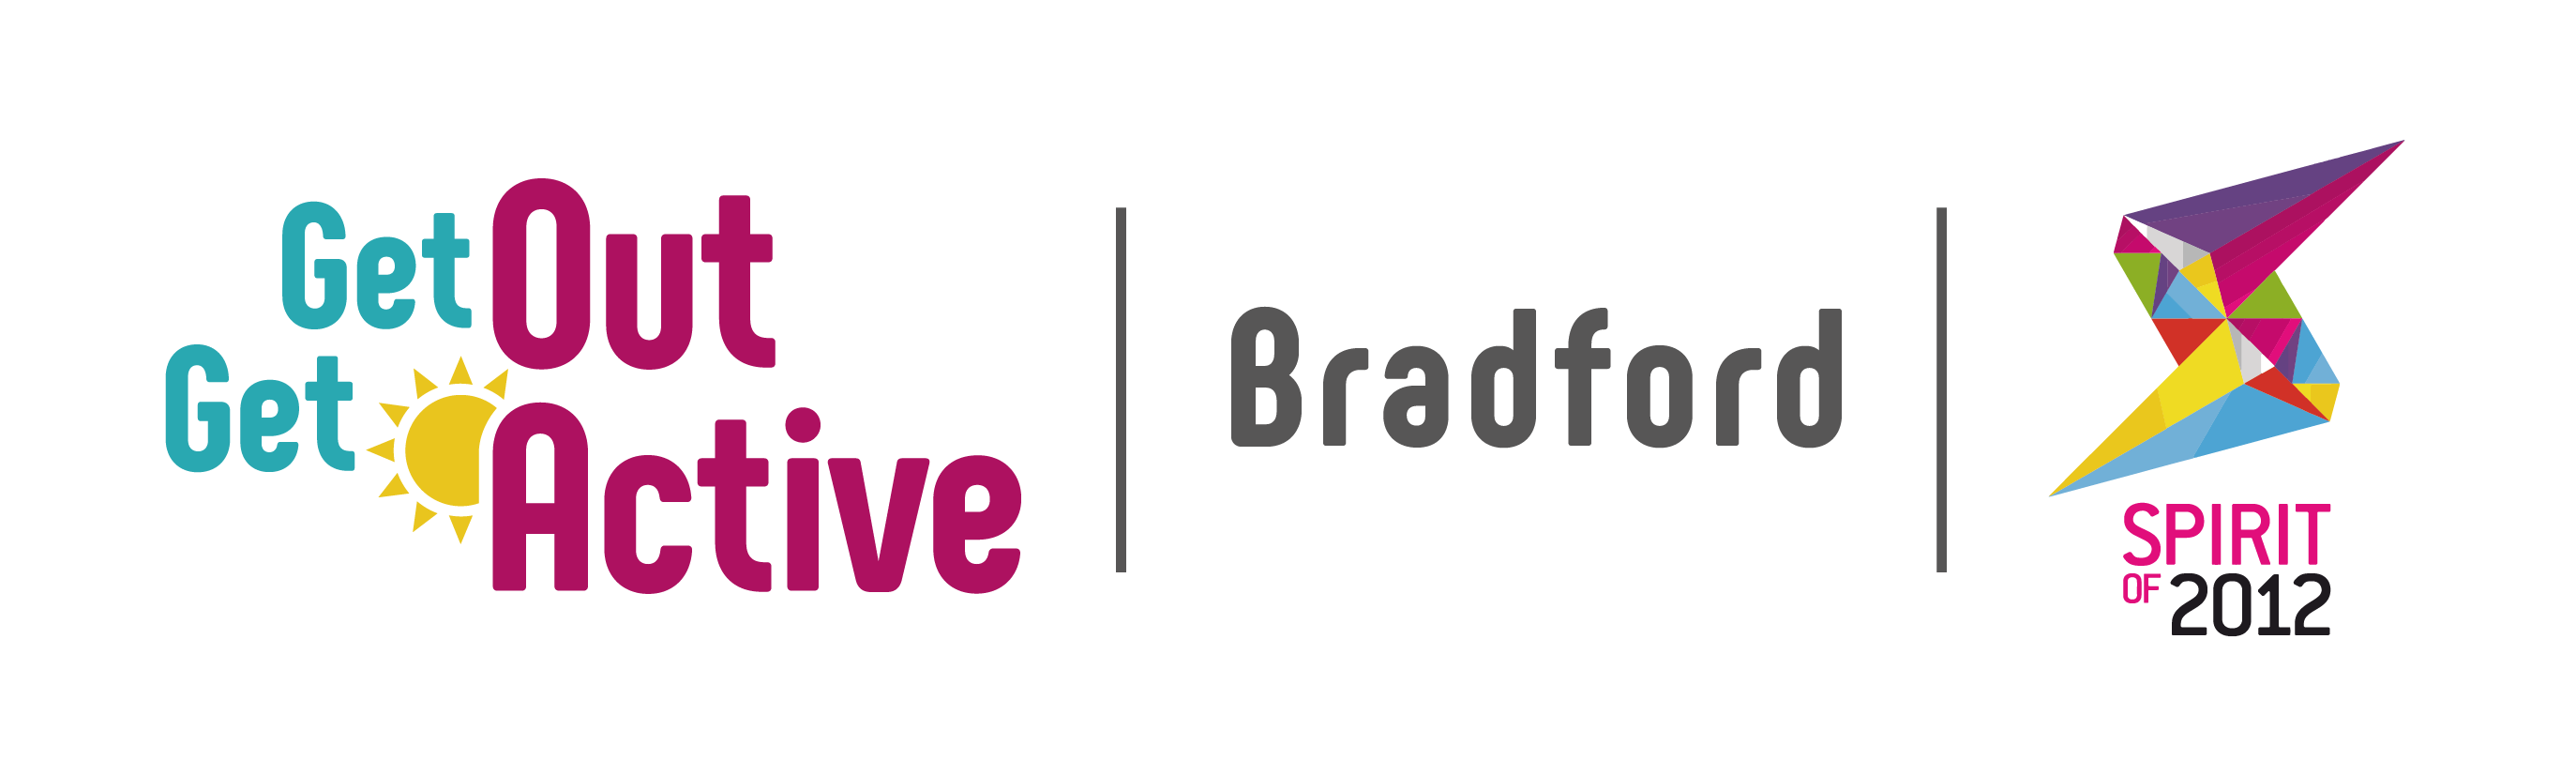 Get Out and Get Active Bradford